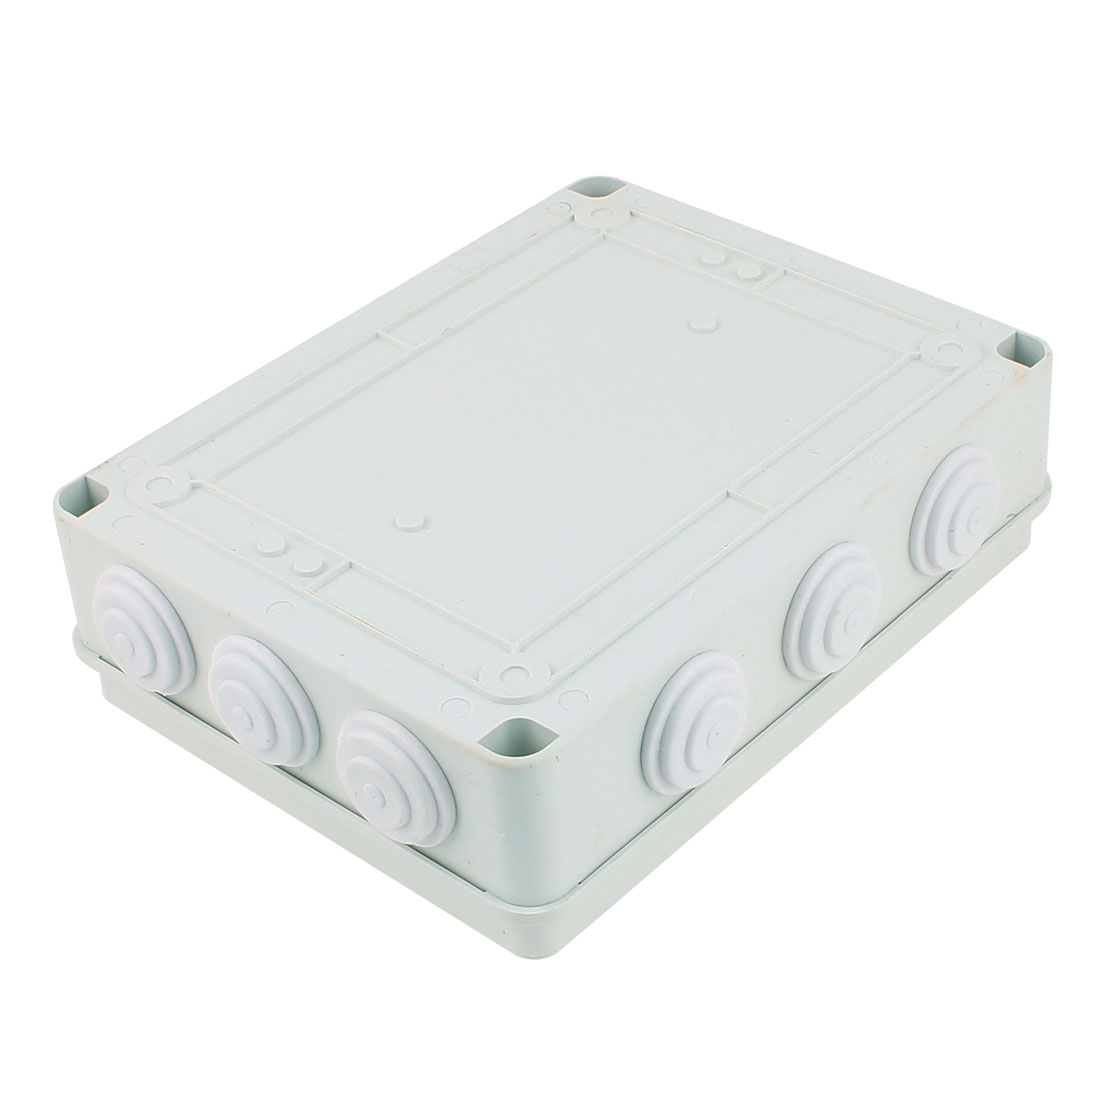 White ABS IP65 Dustproof IP65 Enclosure Square Junction Box 255x200x80mm